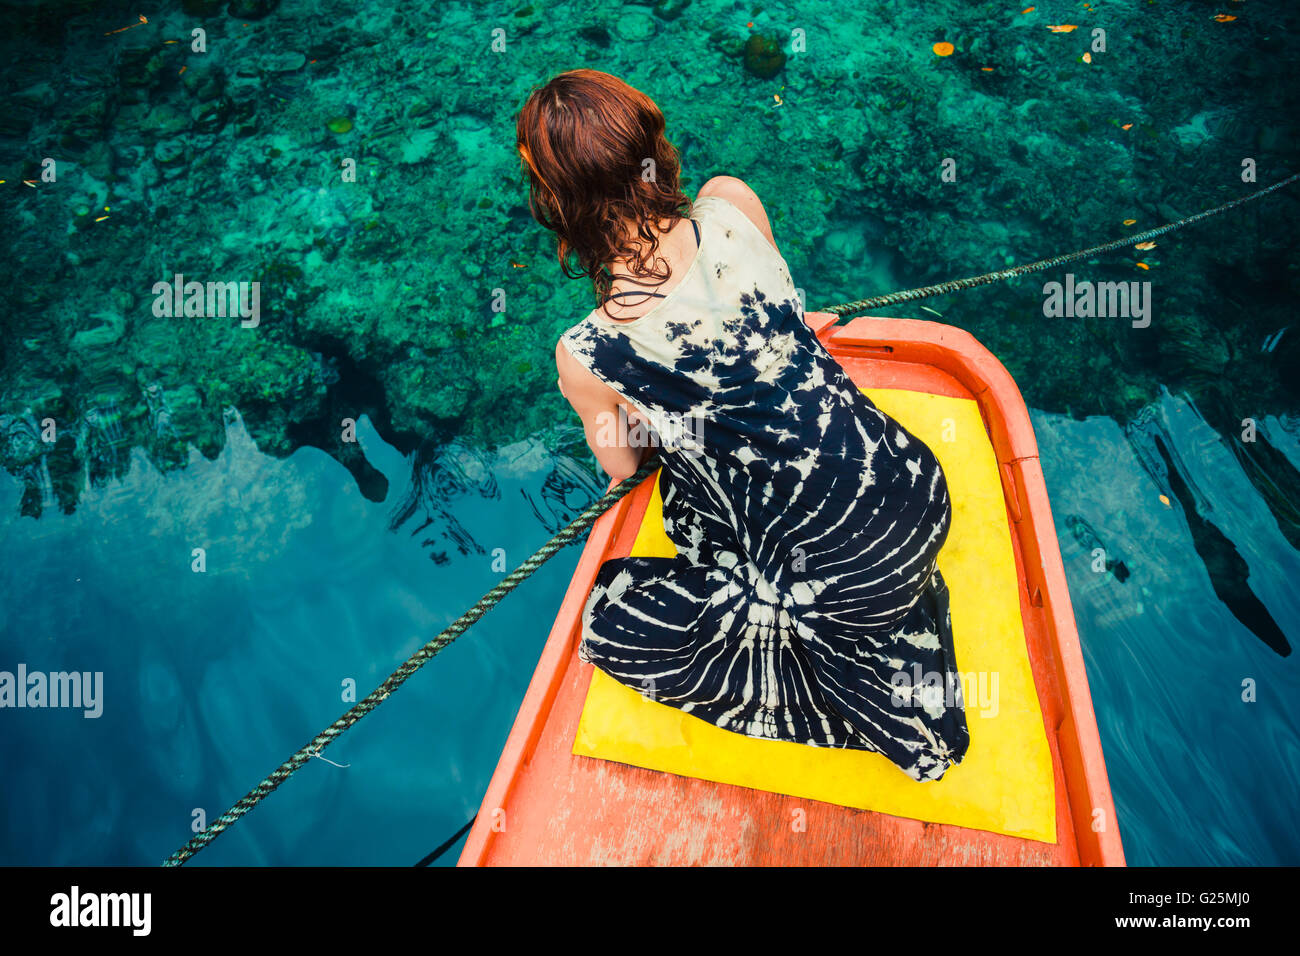 A young woman is sitting on a boat and is looking at the clear blue water - Stock Image